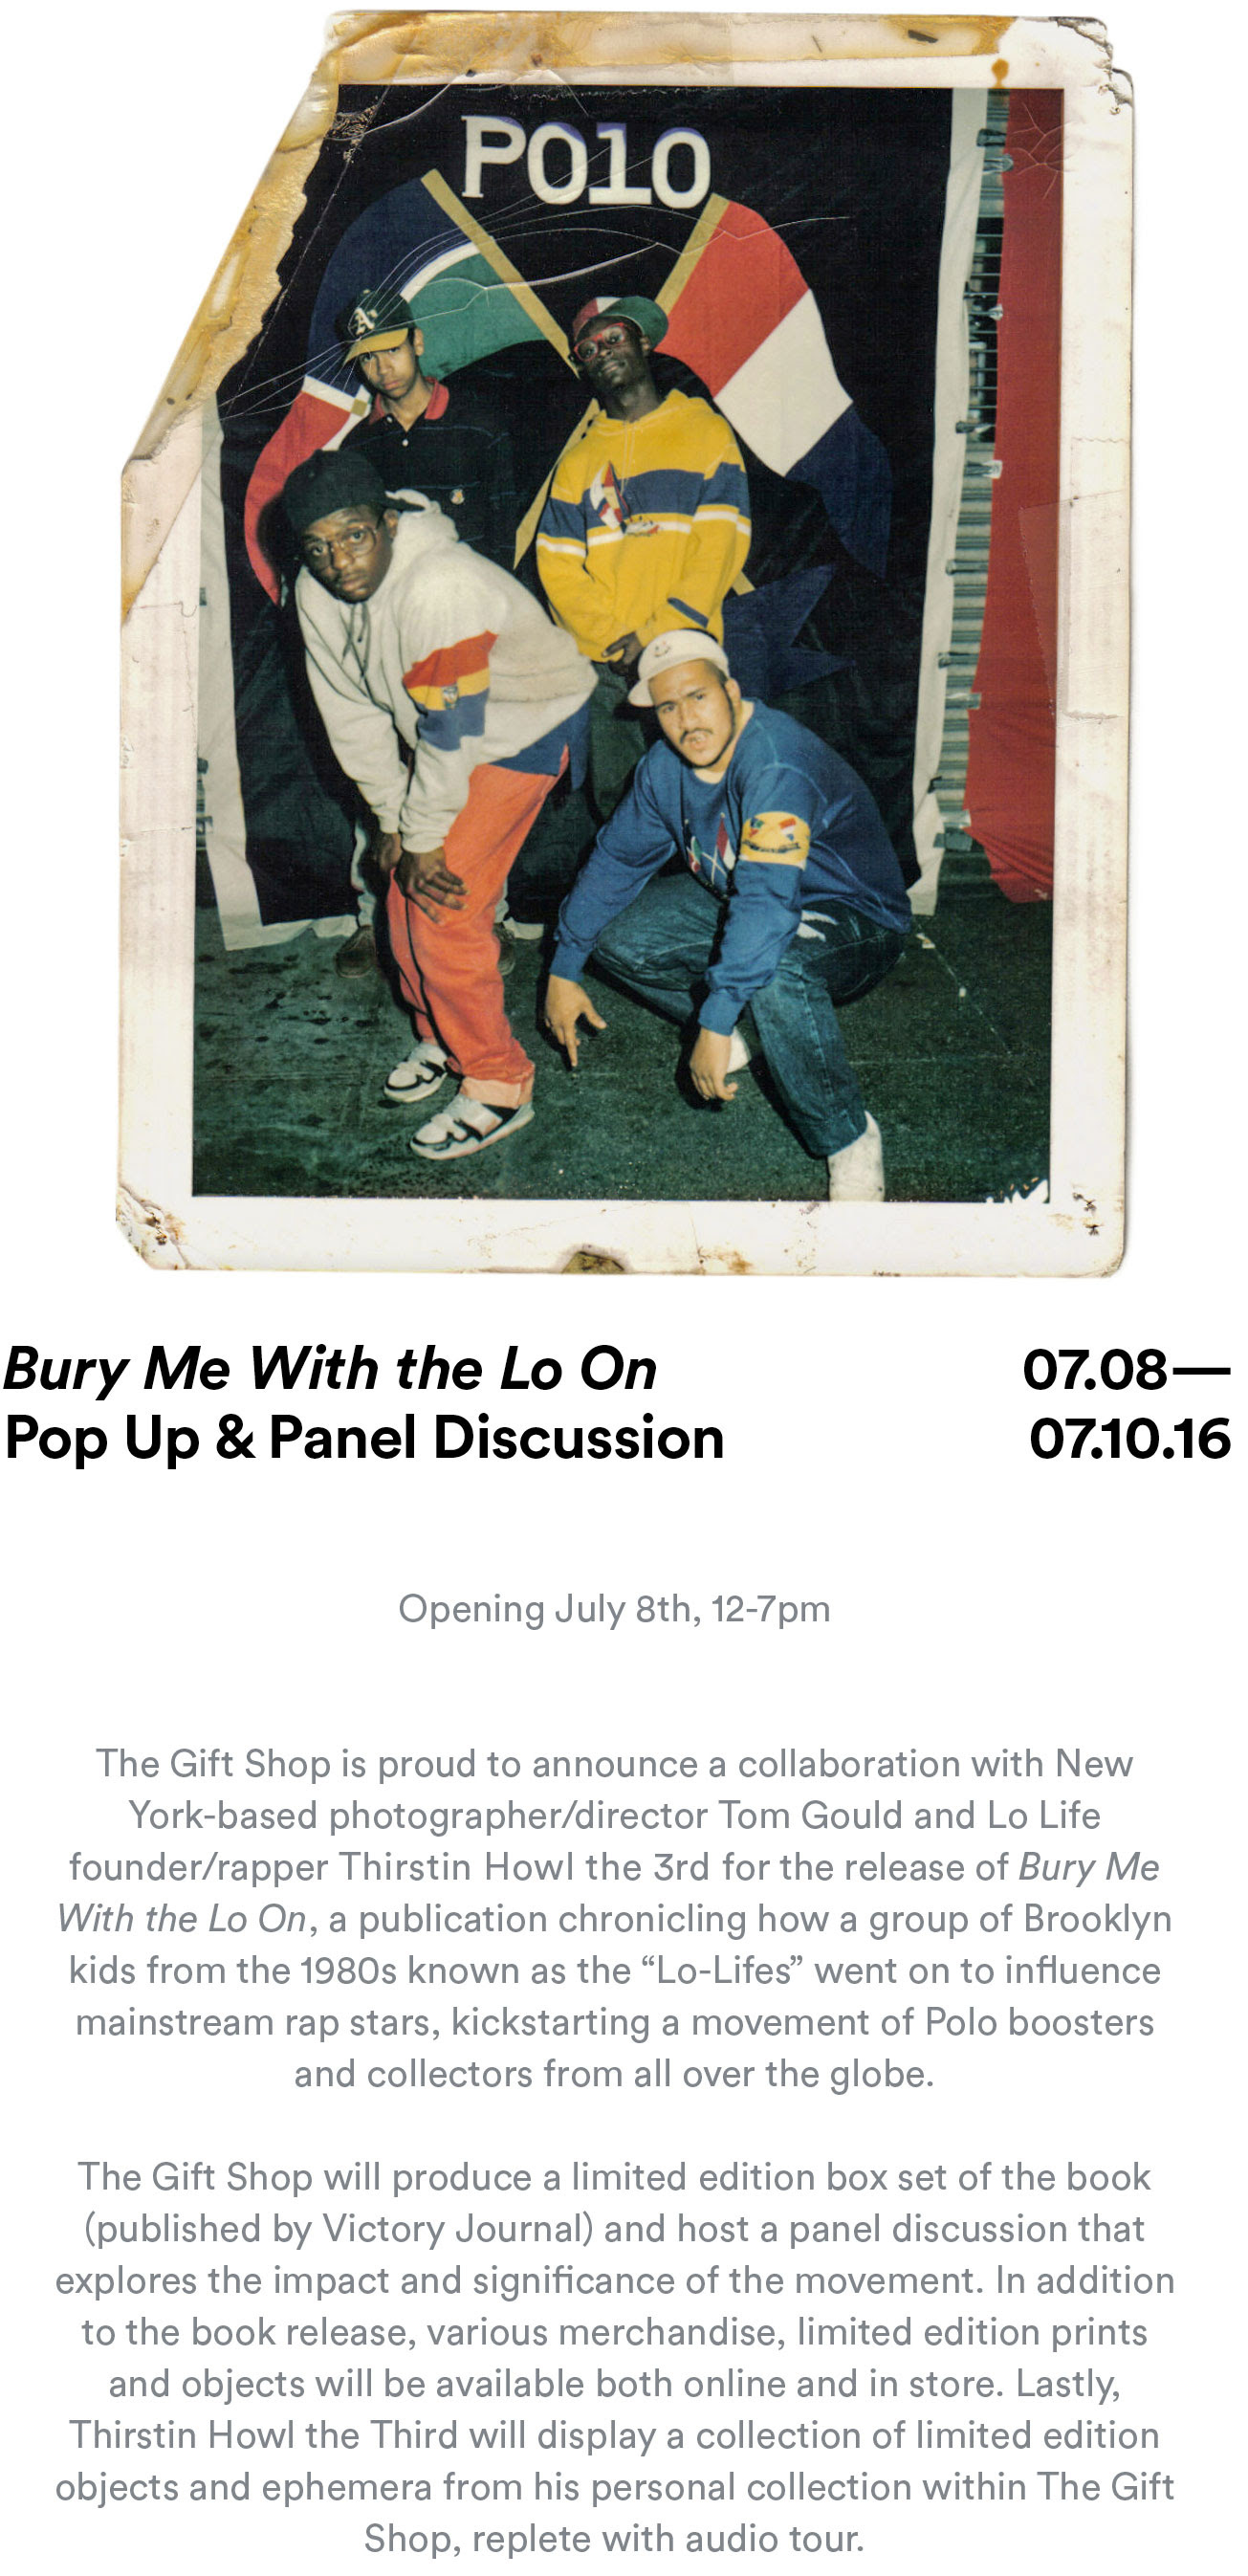 The Gift Shop at Red Bull Studios New York, Tom Gould and Thirstin Howl the 3rd personally invite you to the private book launch of Bury Me With The Lo On, published by Victory Journal.